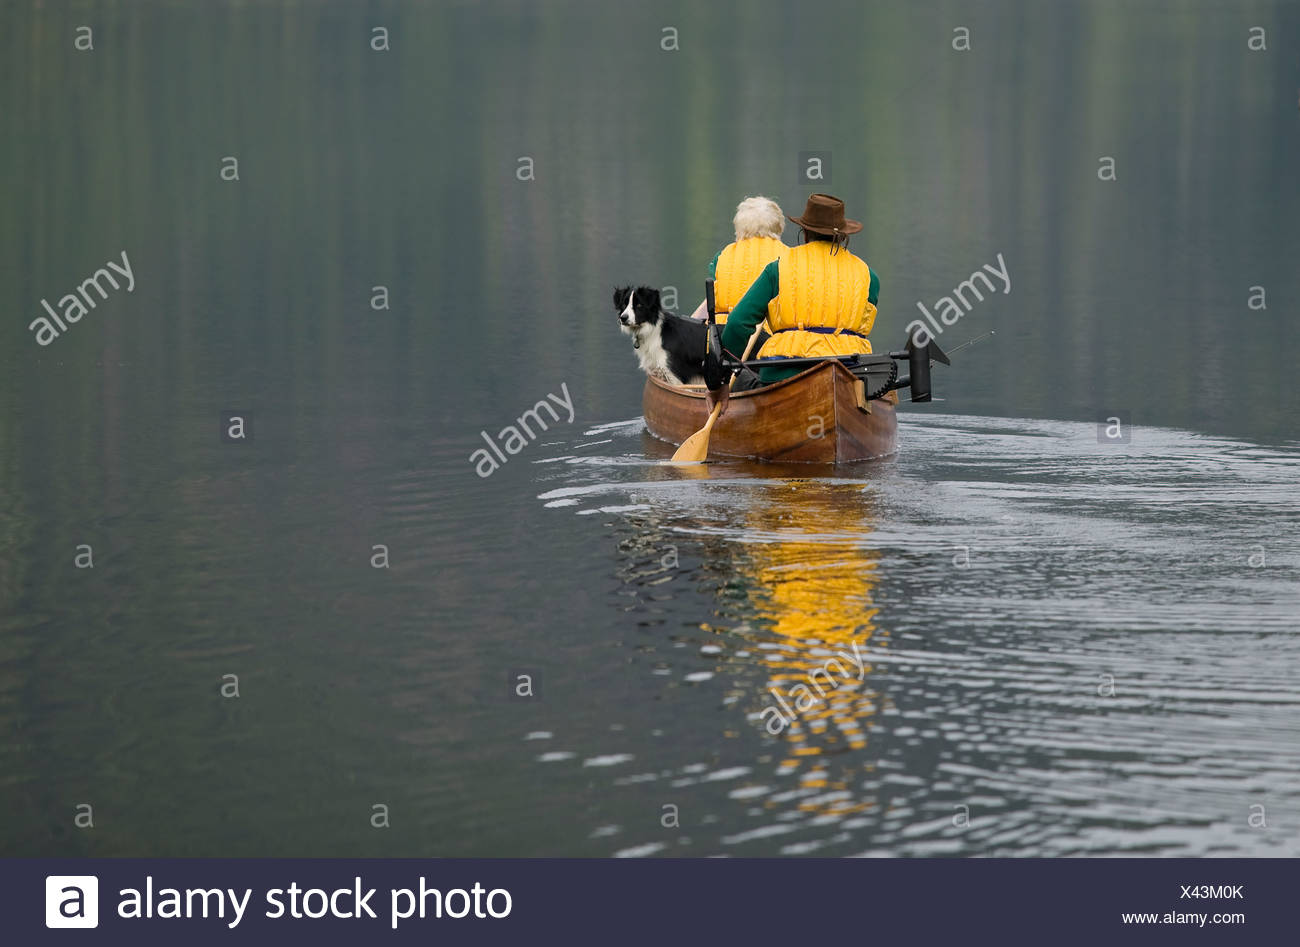 Paddlers in a canoe on Muchalat Lake near Gold River, Vancouver Island, British Columbia, Canada. - Stock Image